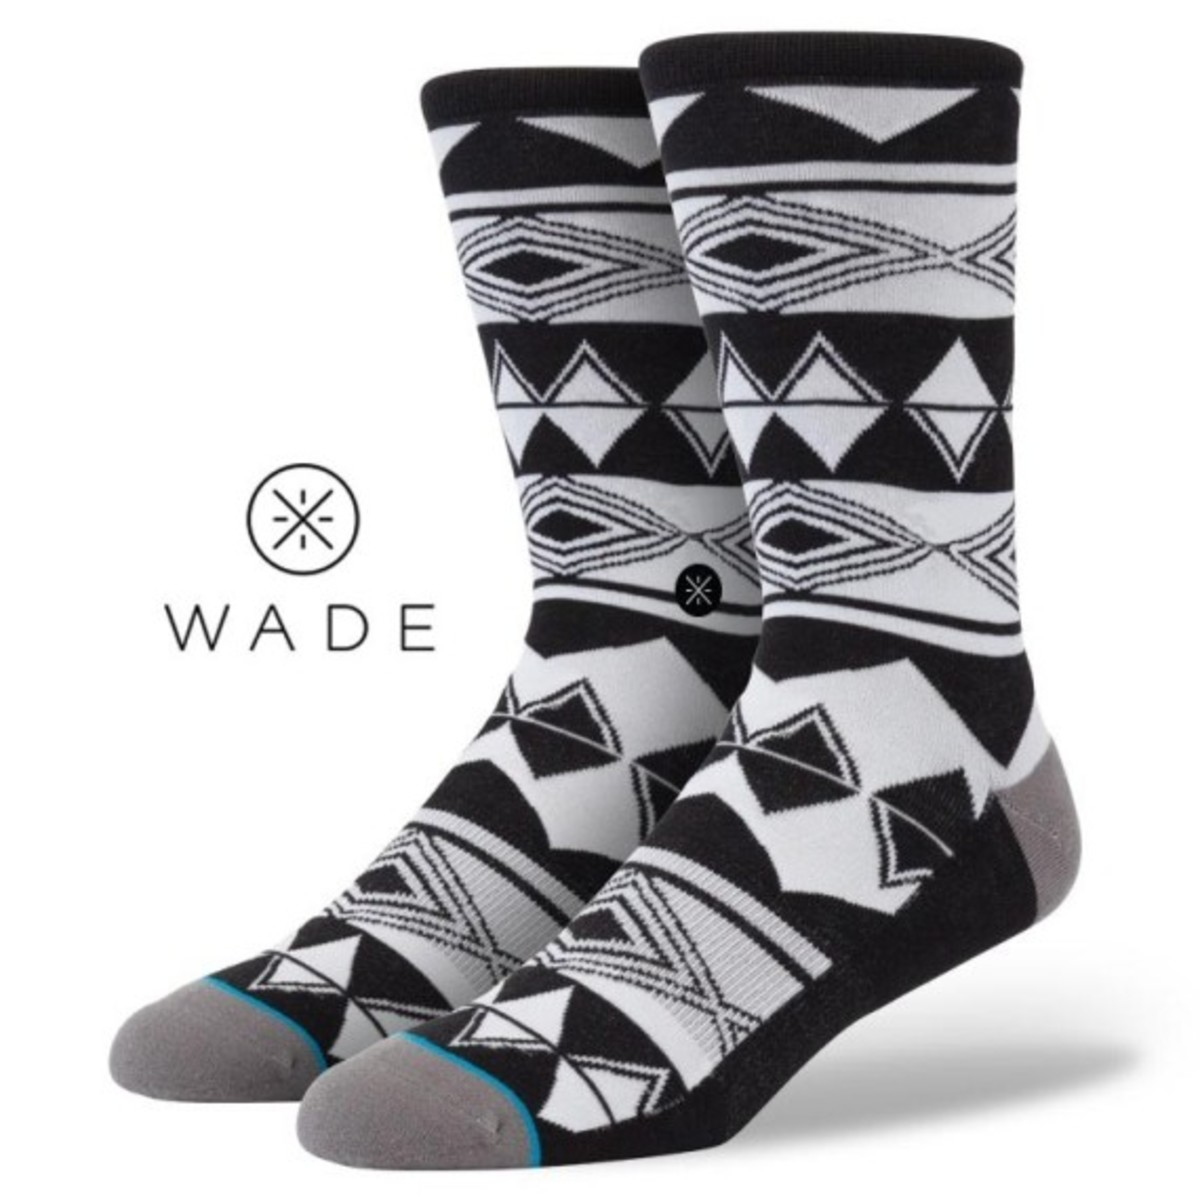 Dwyane Wade x Stance Socks – Summer 2014 Collection - 4